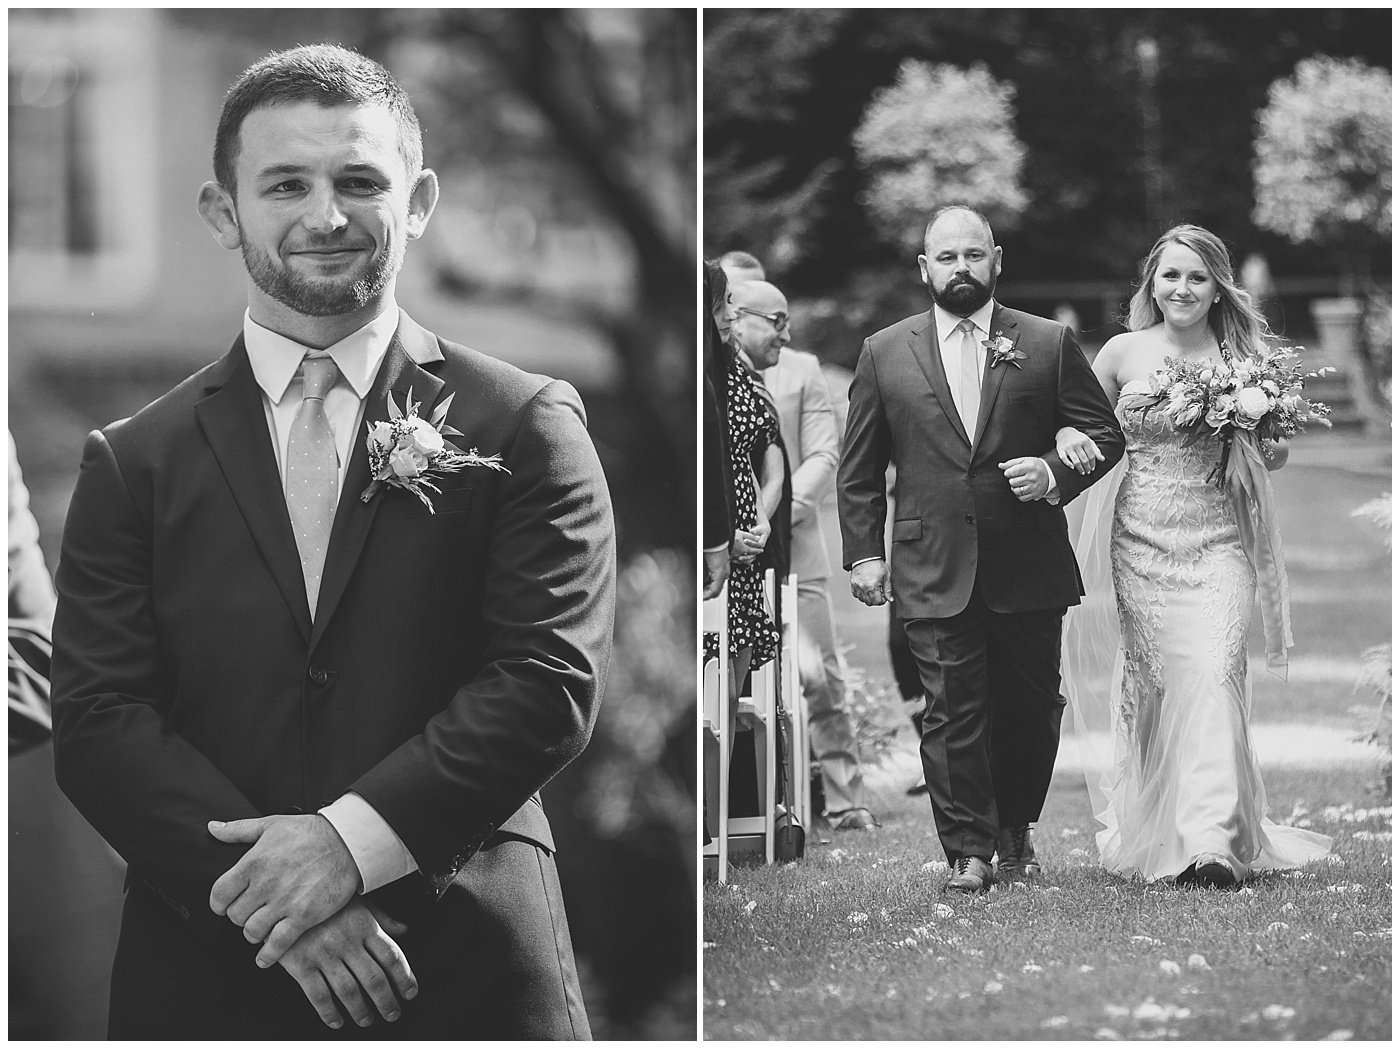 Jake & Abbie | A Swoon-Worthy Wedding at Breathtaking Garden Estate 96